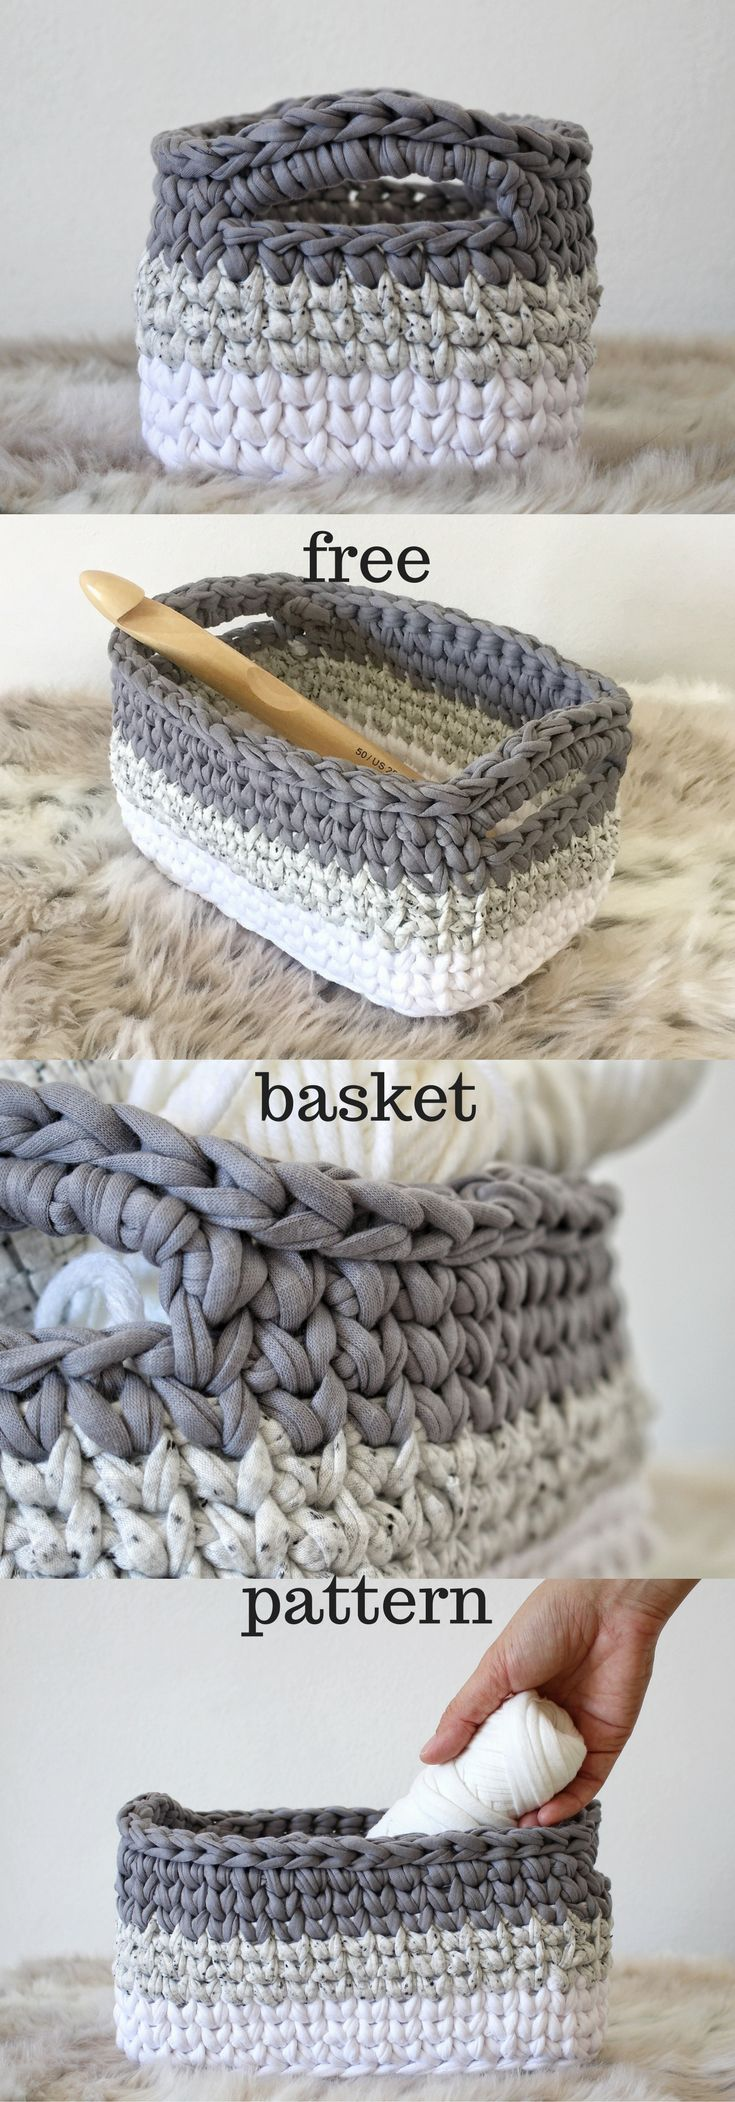 1441 best be creative images on Pinterest | Spielzeug, Alte hasen ...